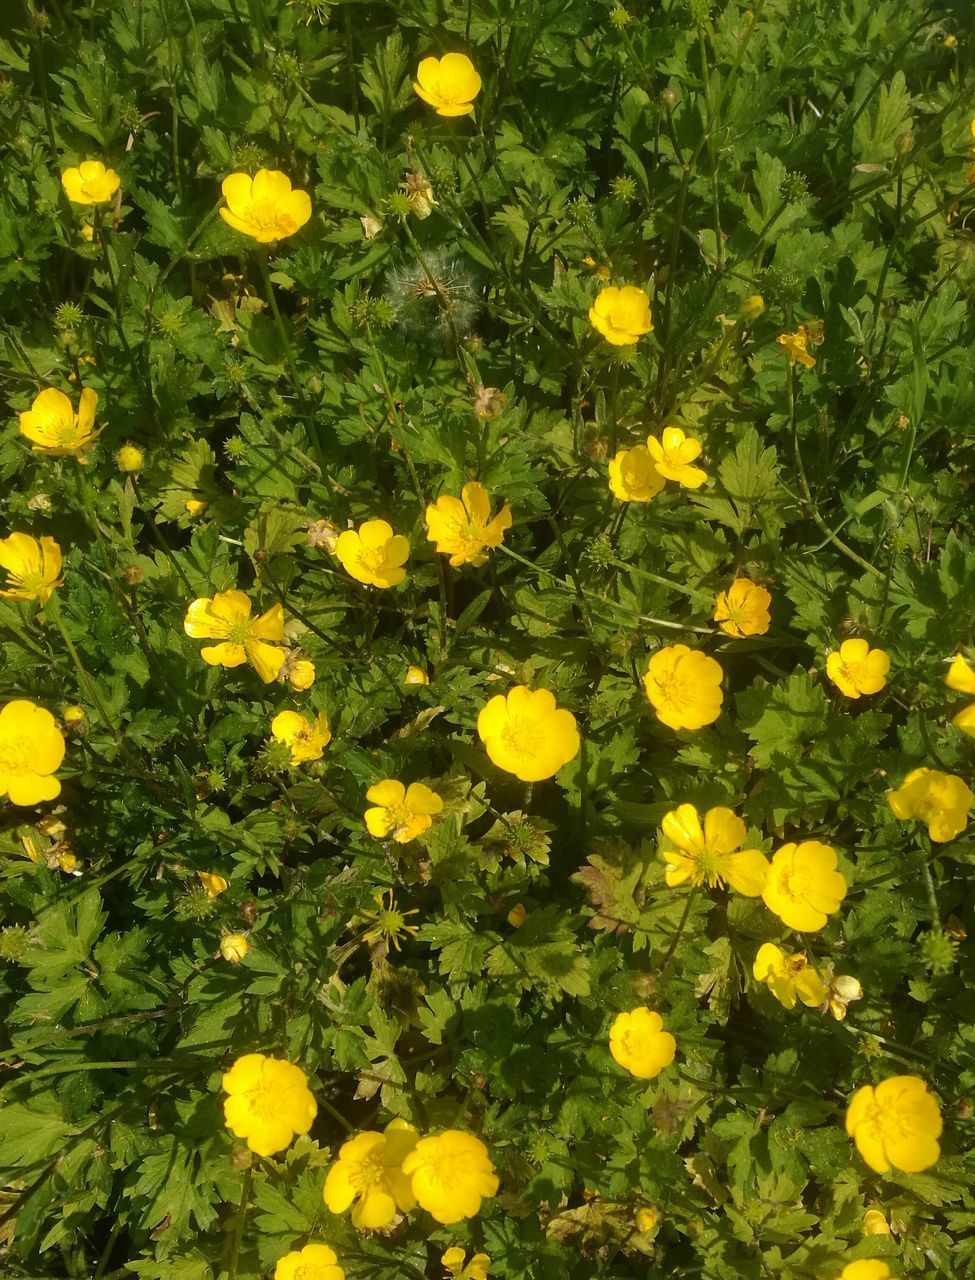 HIGH ANGLE VIEW OF YELLOW FLOWERING PLANTS IN FIELD